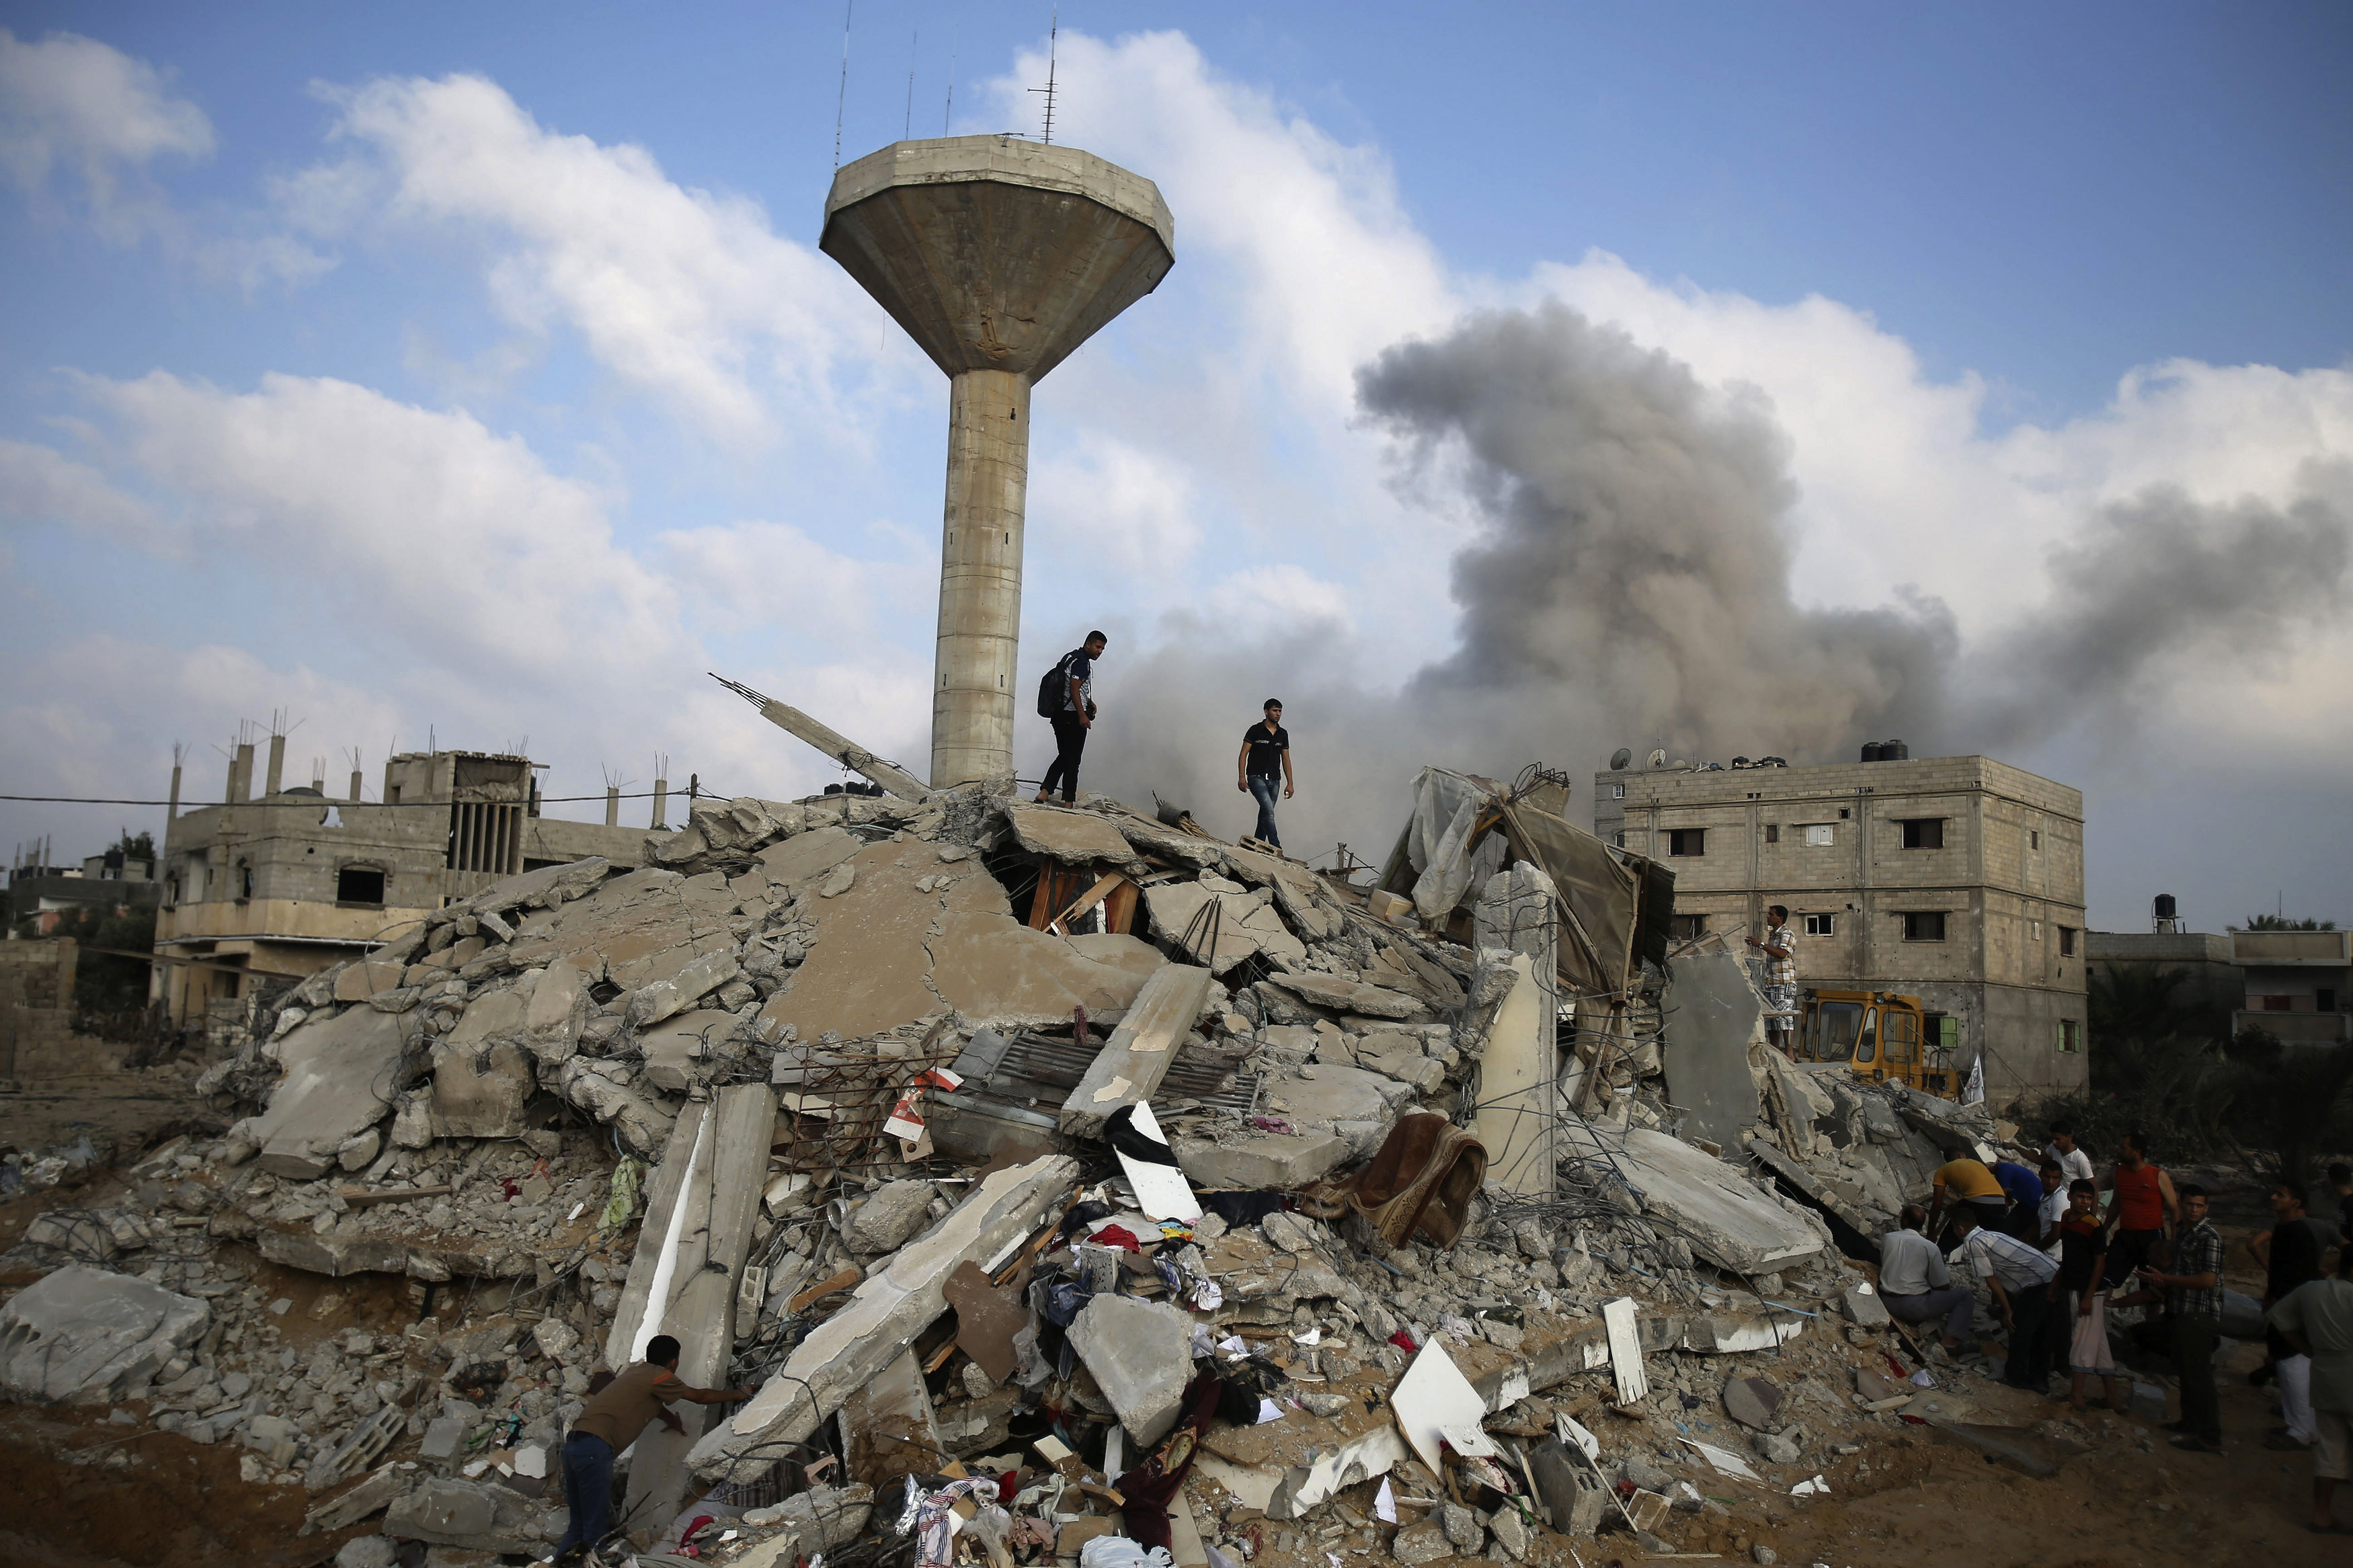 Palestinians search for victims as people gather atop the remains of a house, which witnesses said was destroyed in an Israeli air strike, in Rafah in the southern Gaza Strip on July 29, 2014.